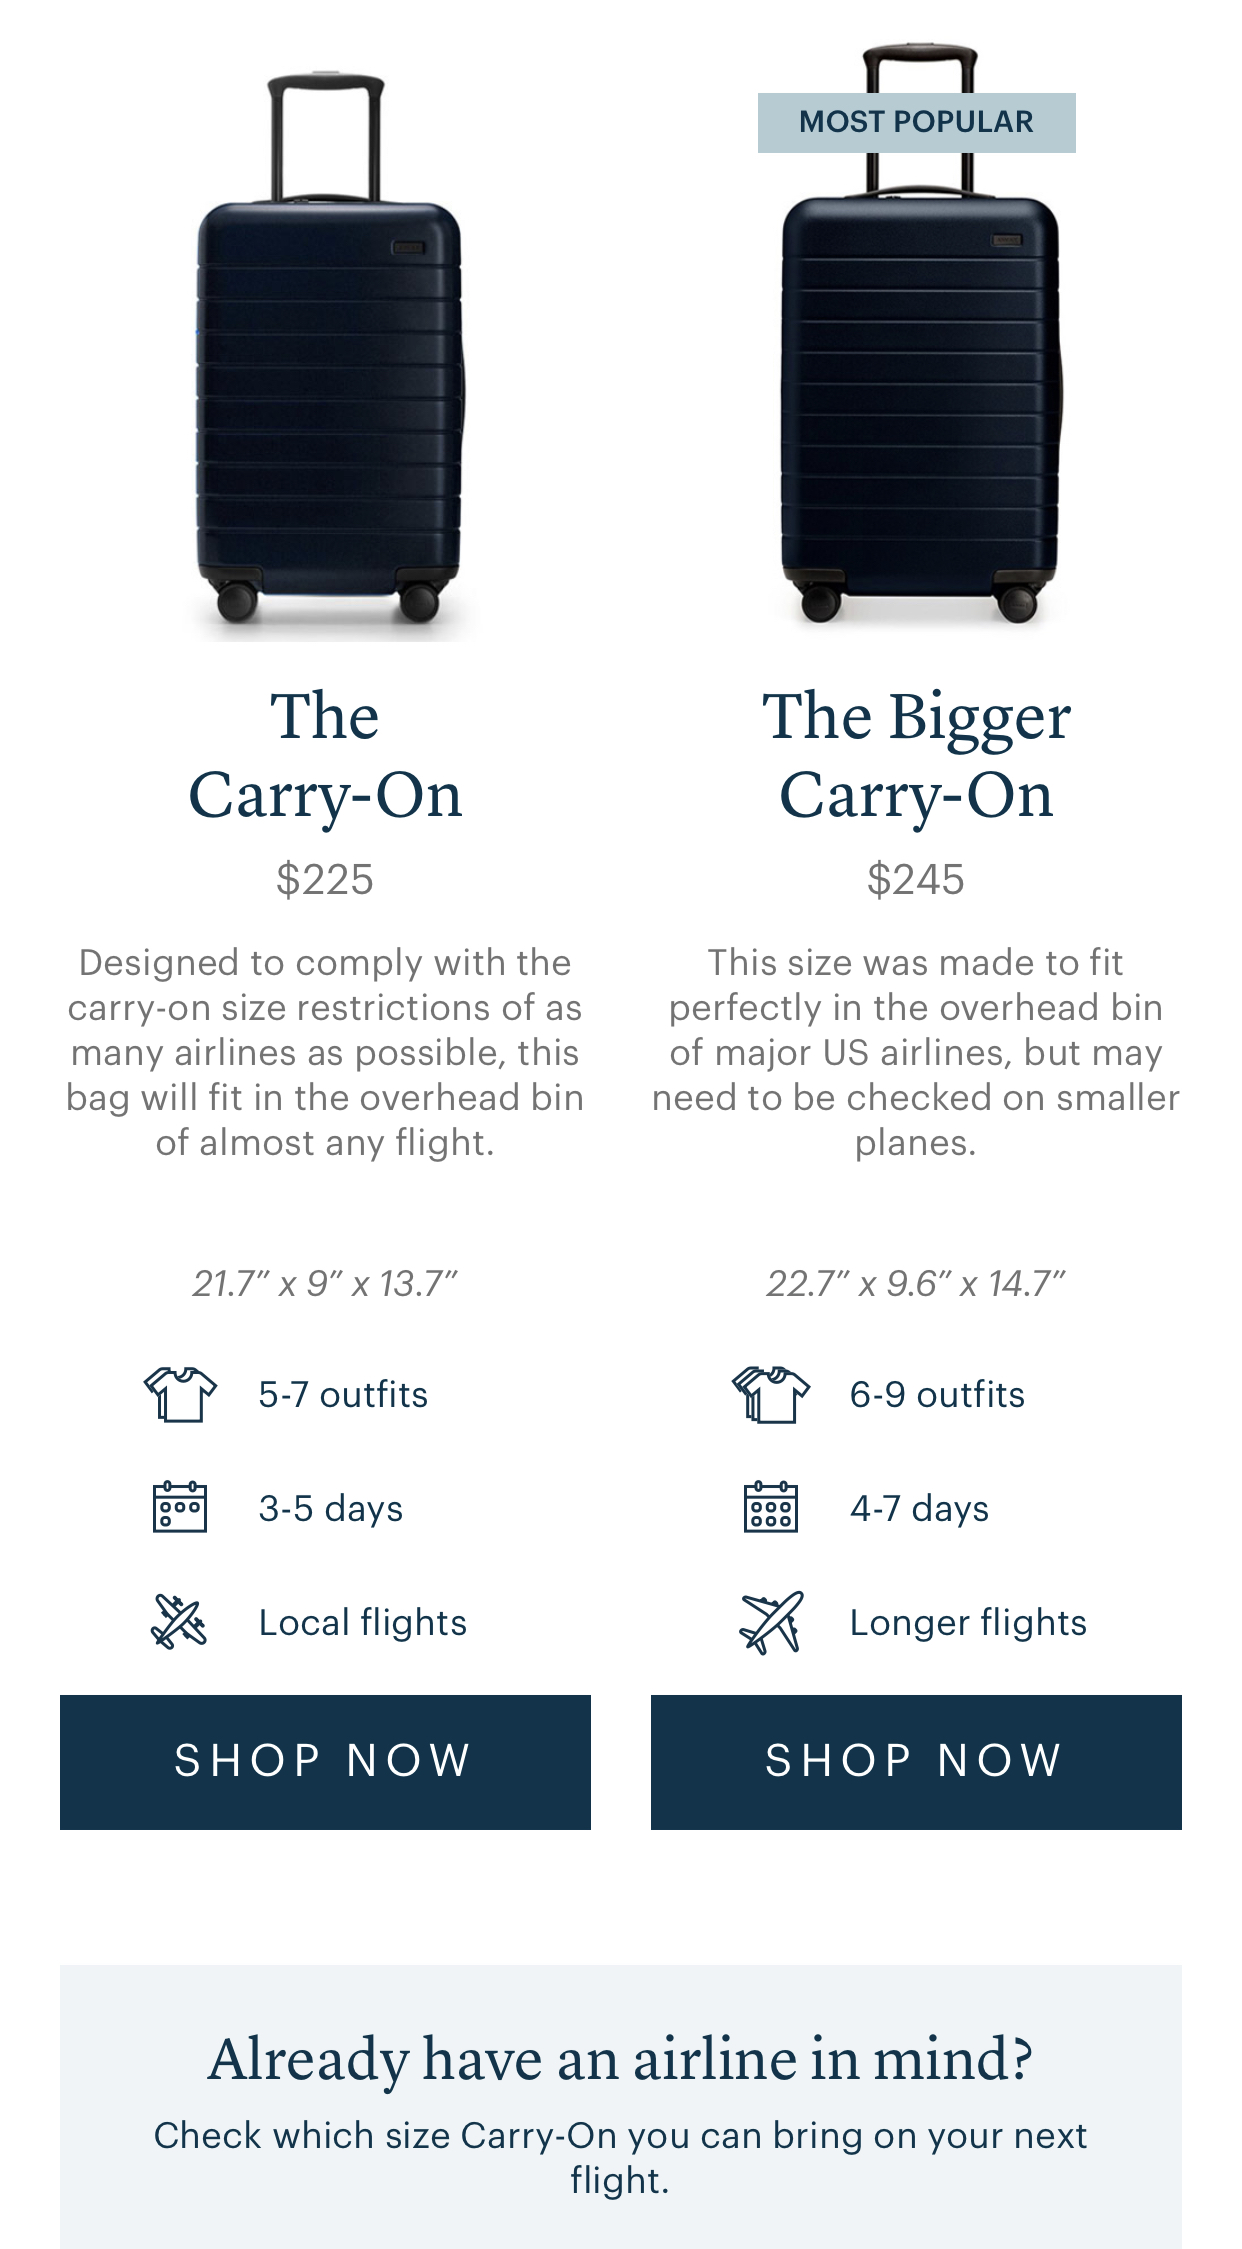 Differences between standard and bigger carry on